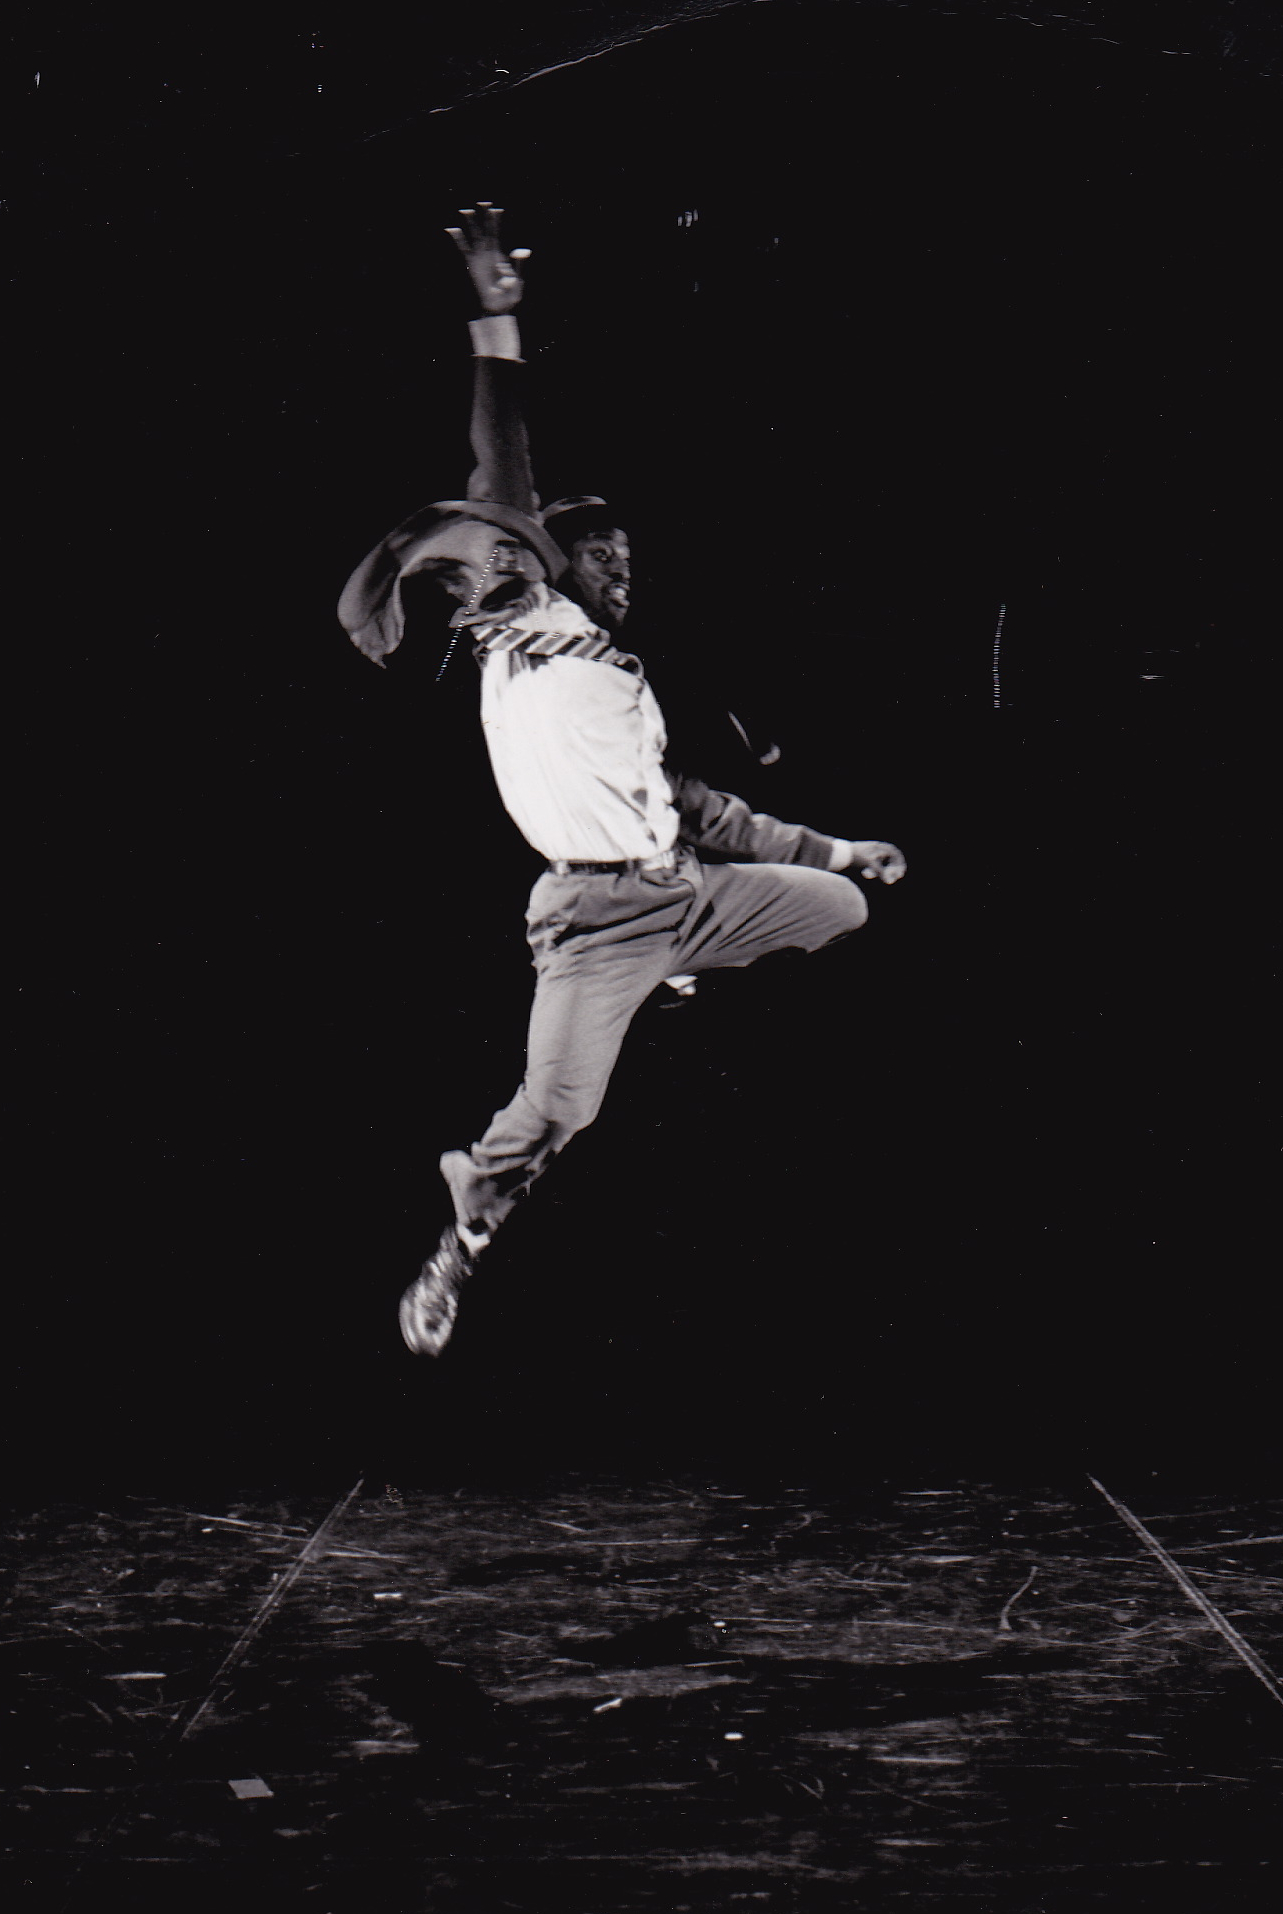 Dancer jumping in the air with one arm outstretched